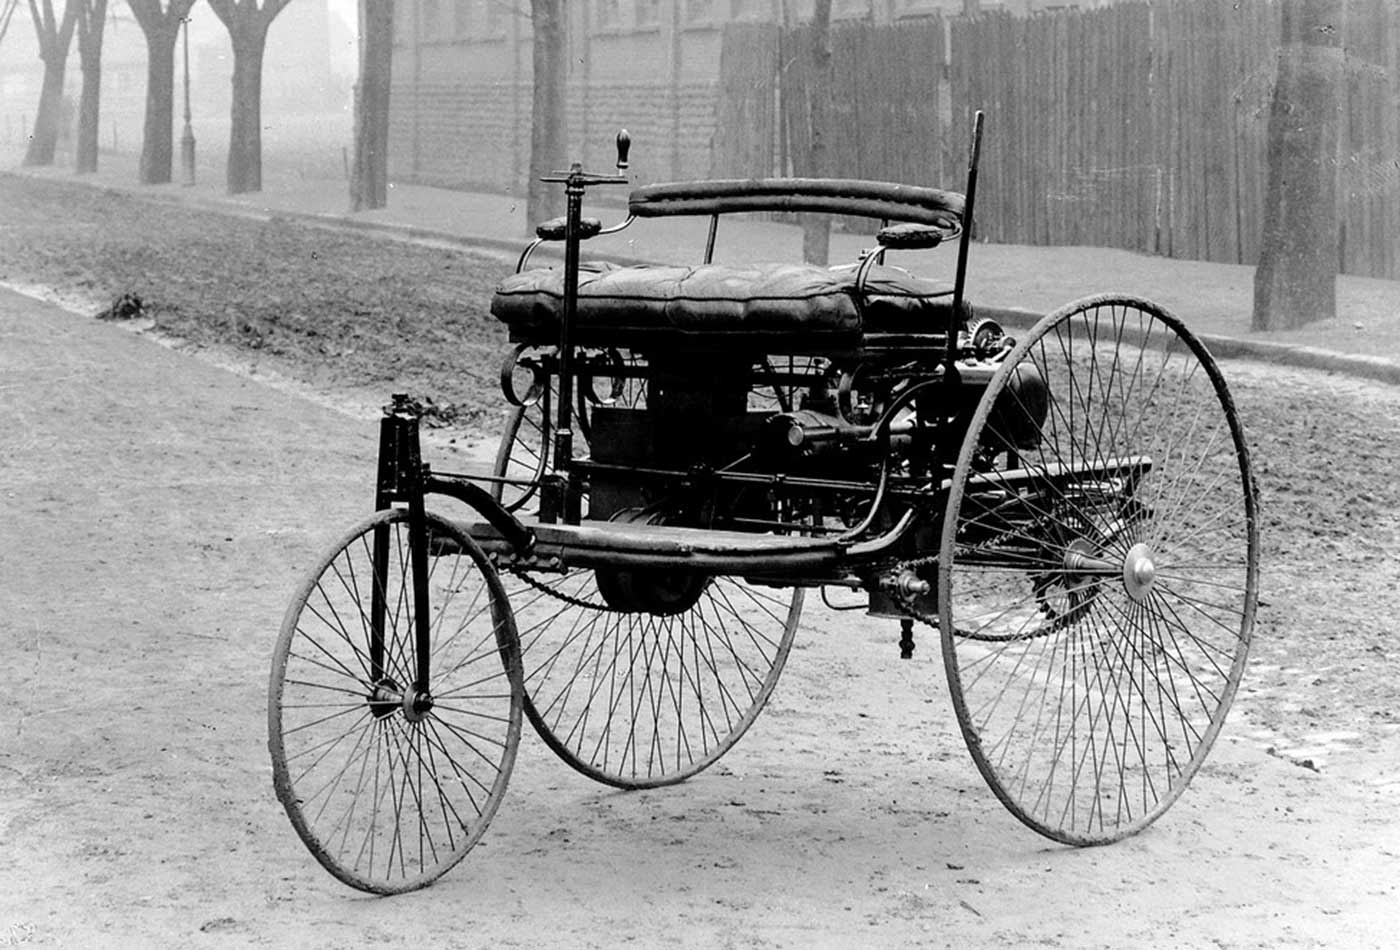 The original Benz Patent-Motorwagen, first built in 1885 and awarded the patent for the concept.